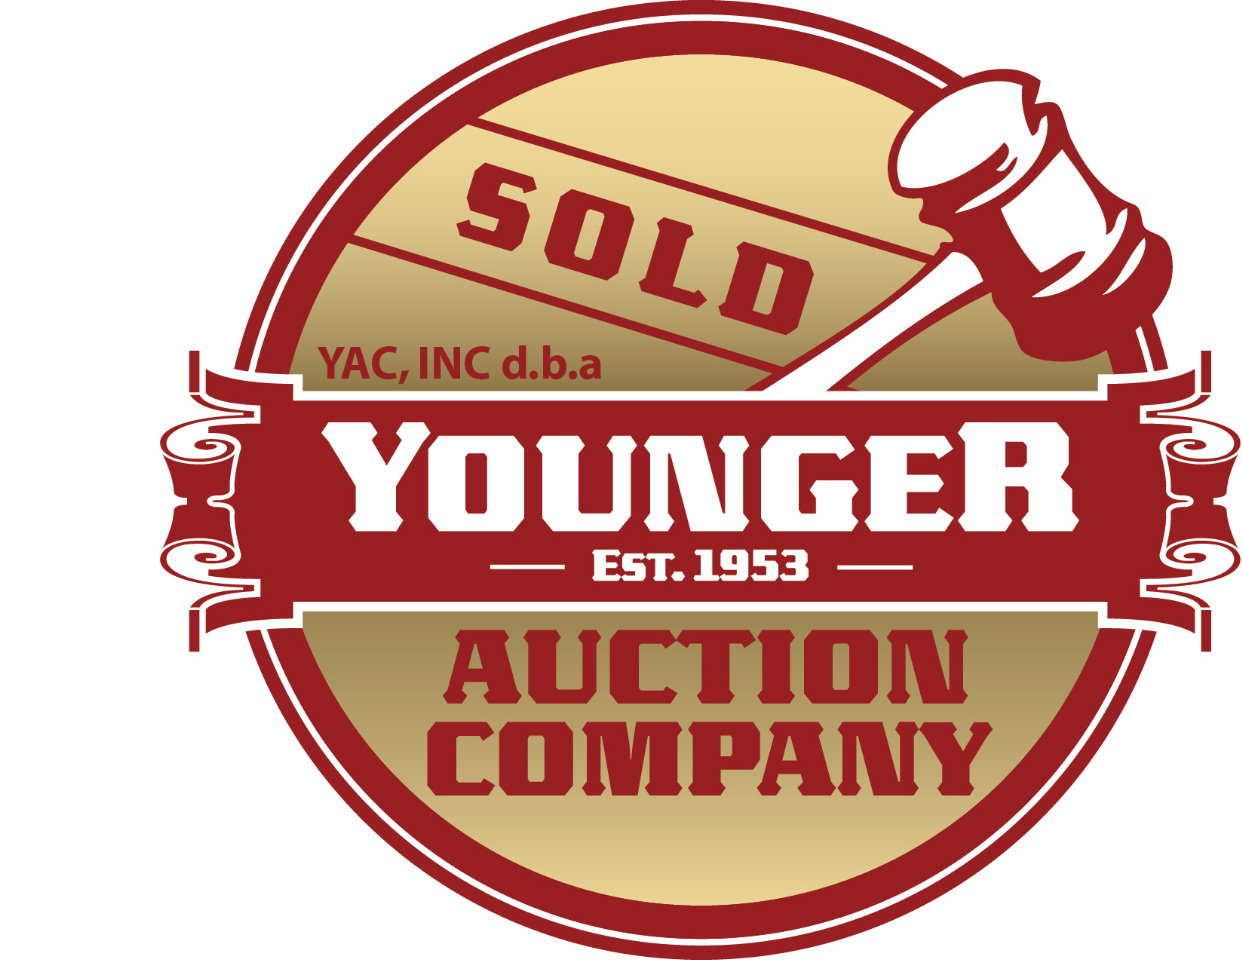 YAC, INC. d.b.a. Younger Auction Co.